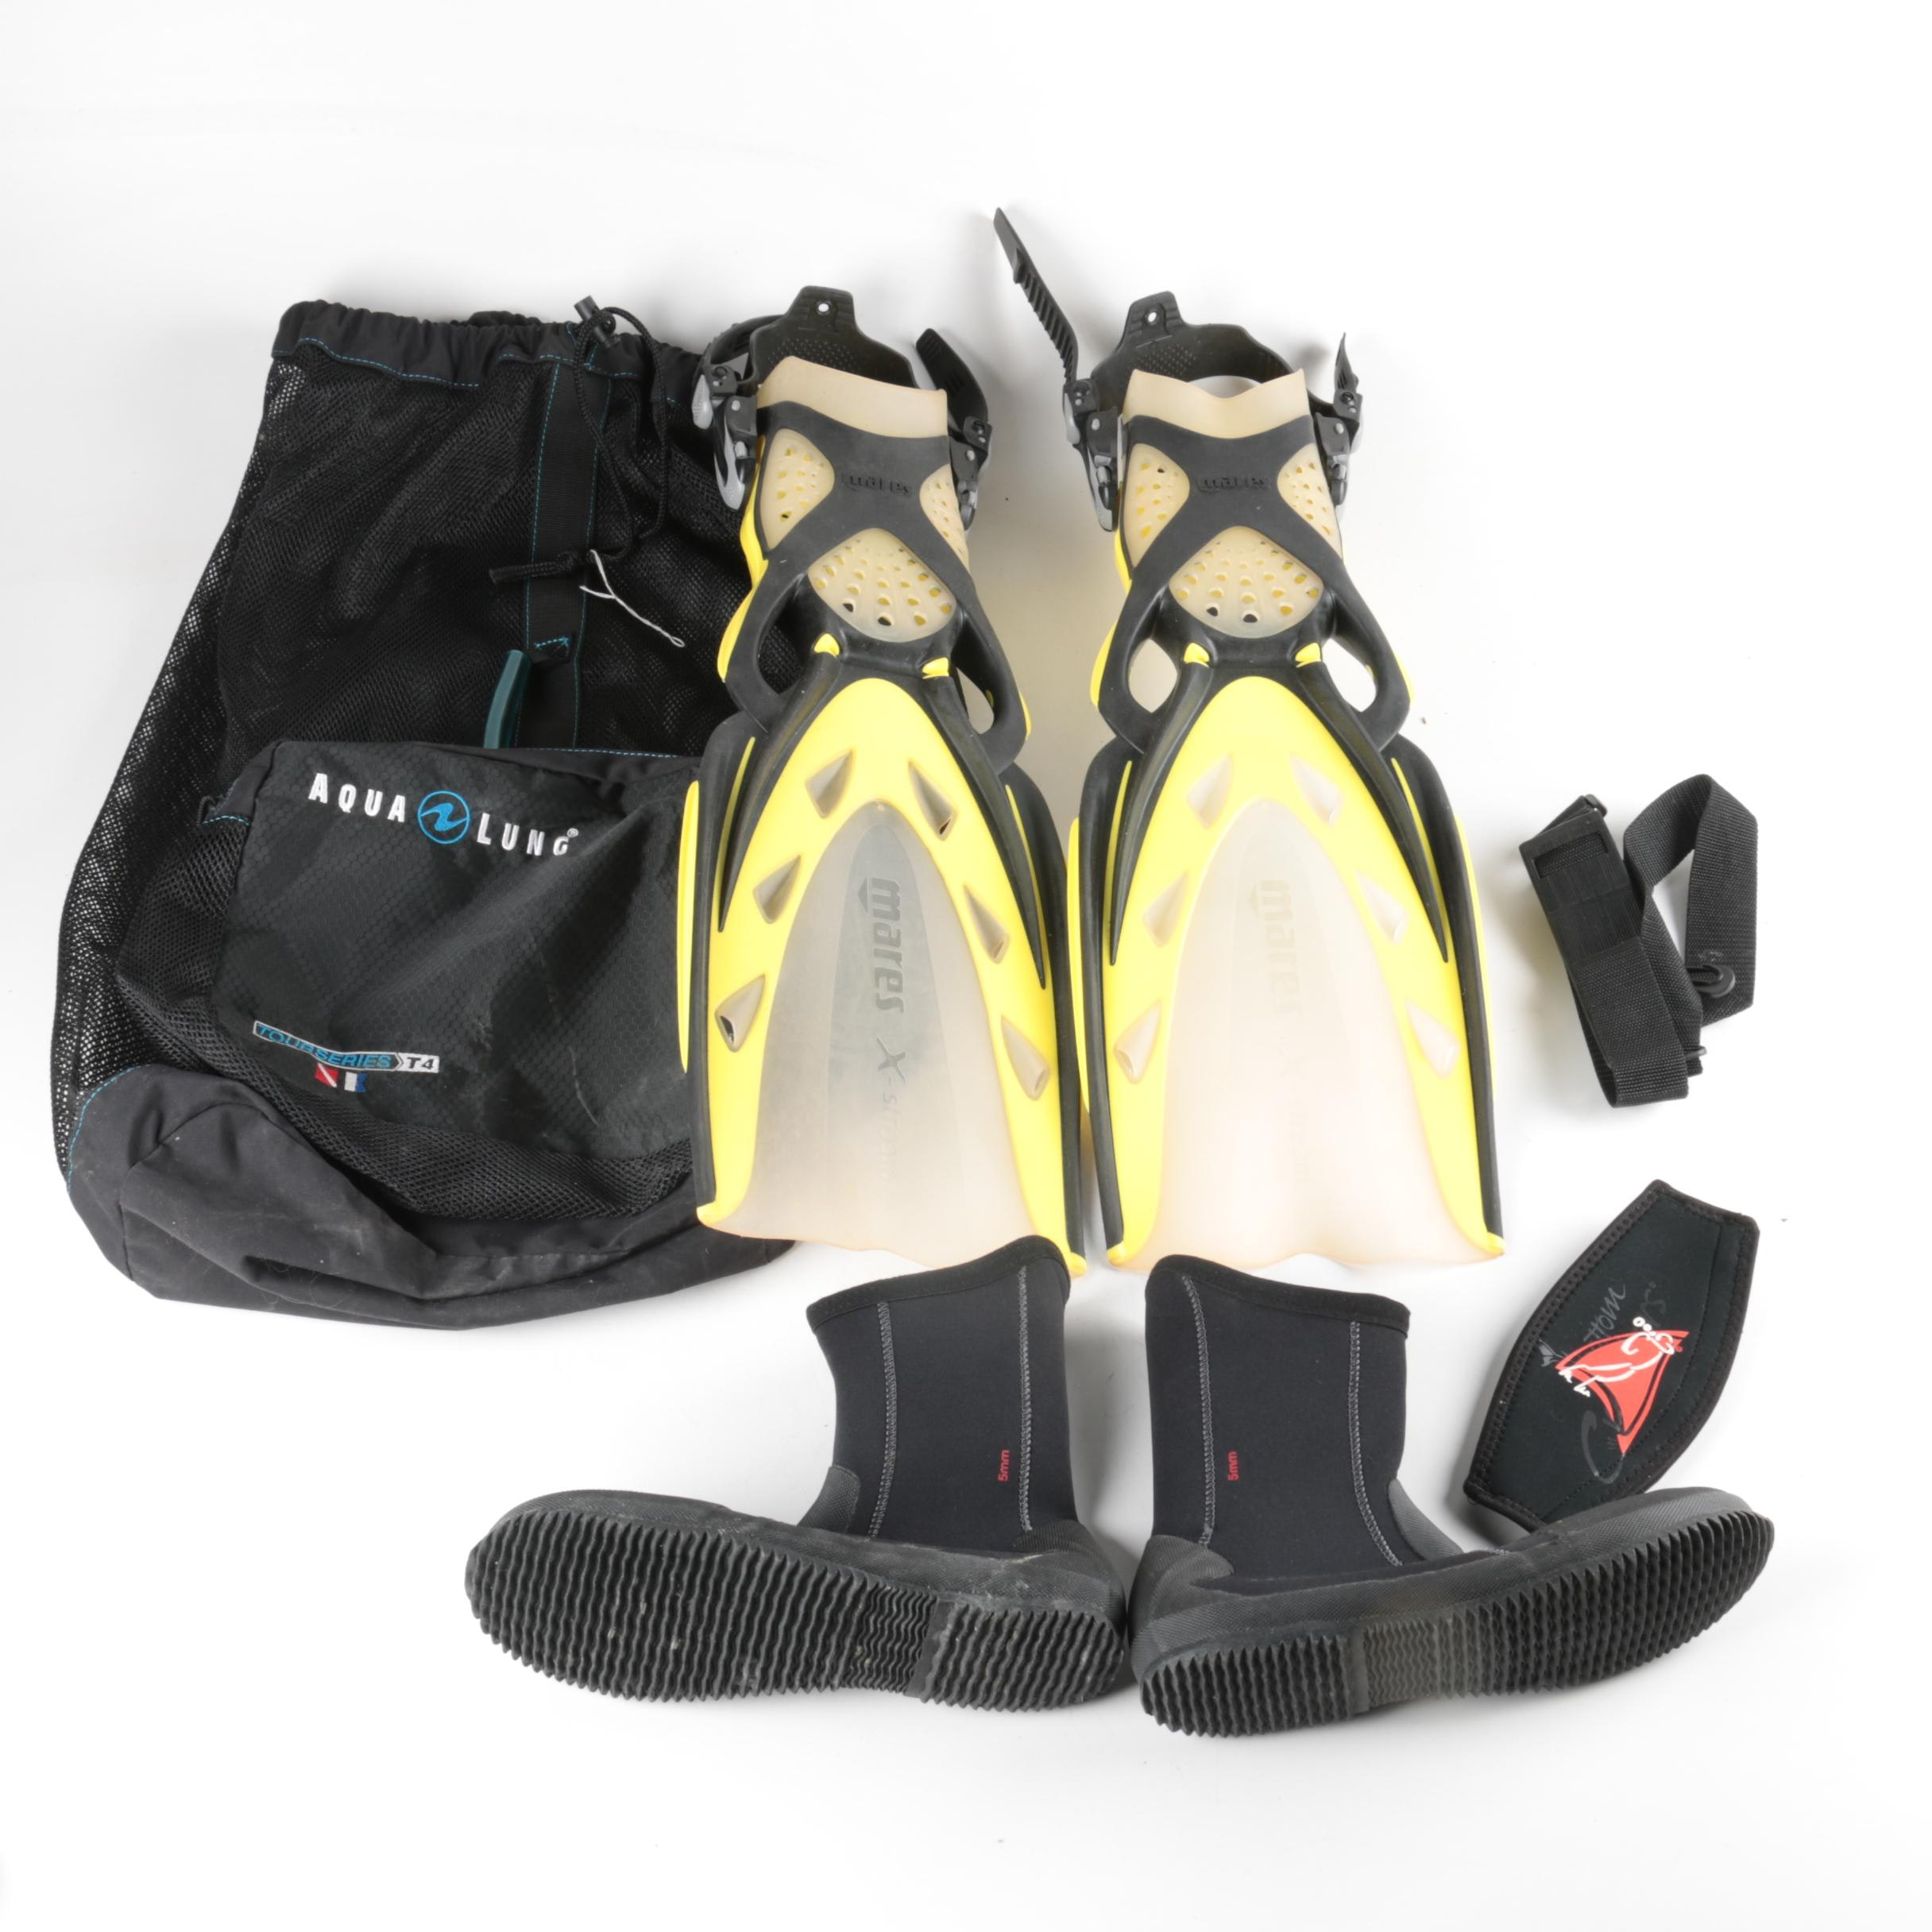 Mares Scuba Fins with Aqua Lung Dive Boots and Accessories